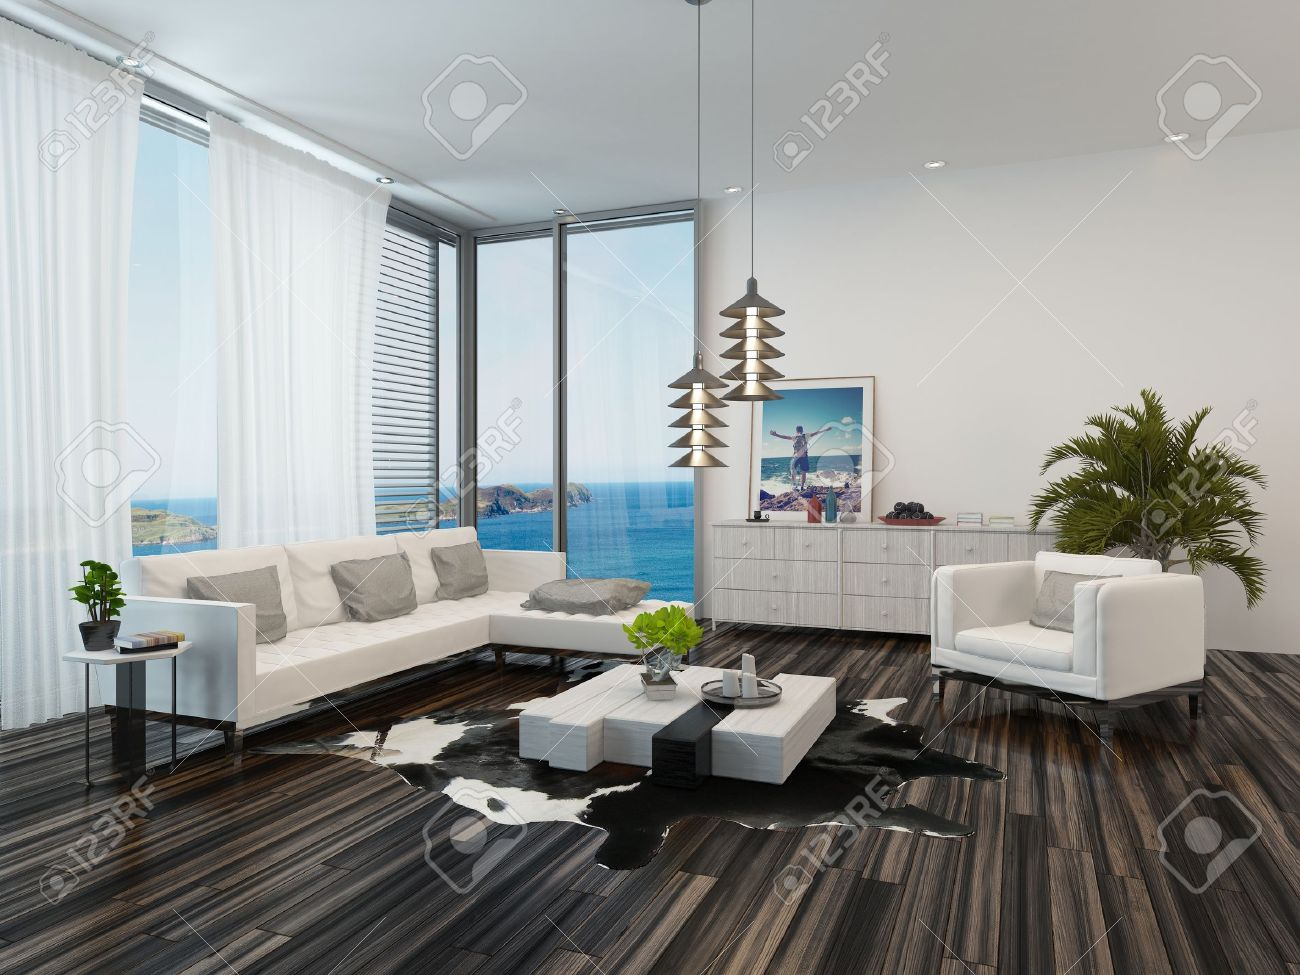 Ocean Living Room Modern Living Room Interior Overlooking The Ocean With Wooden